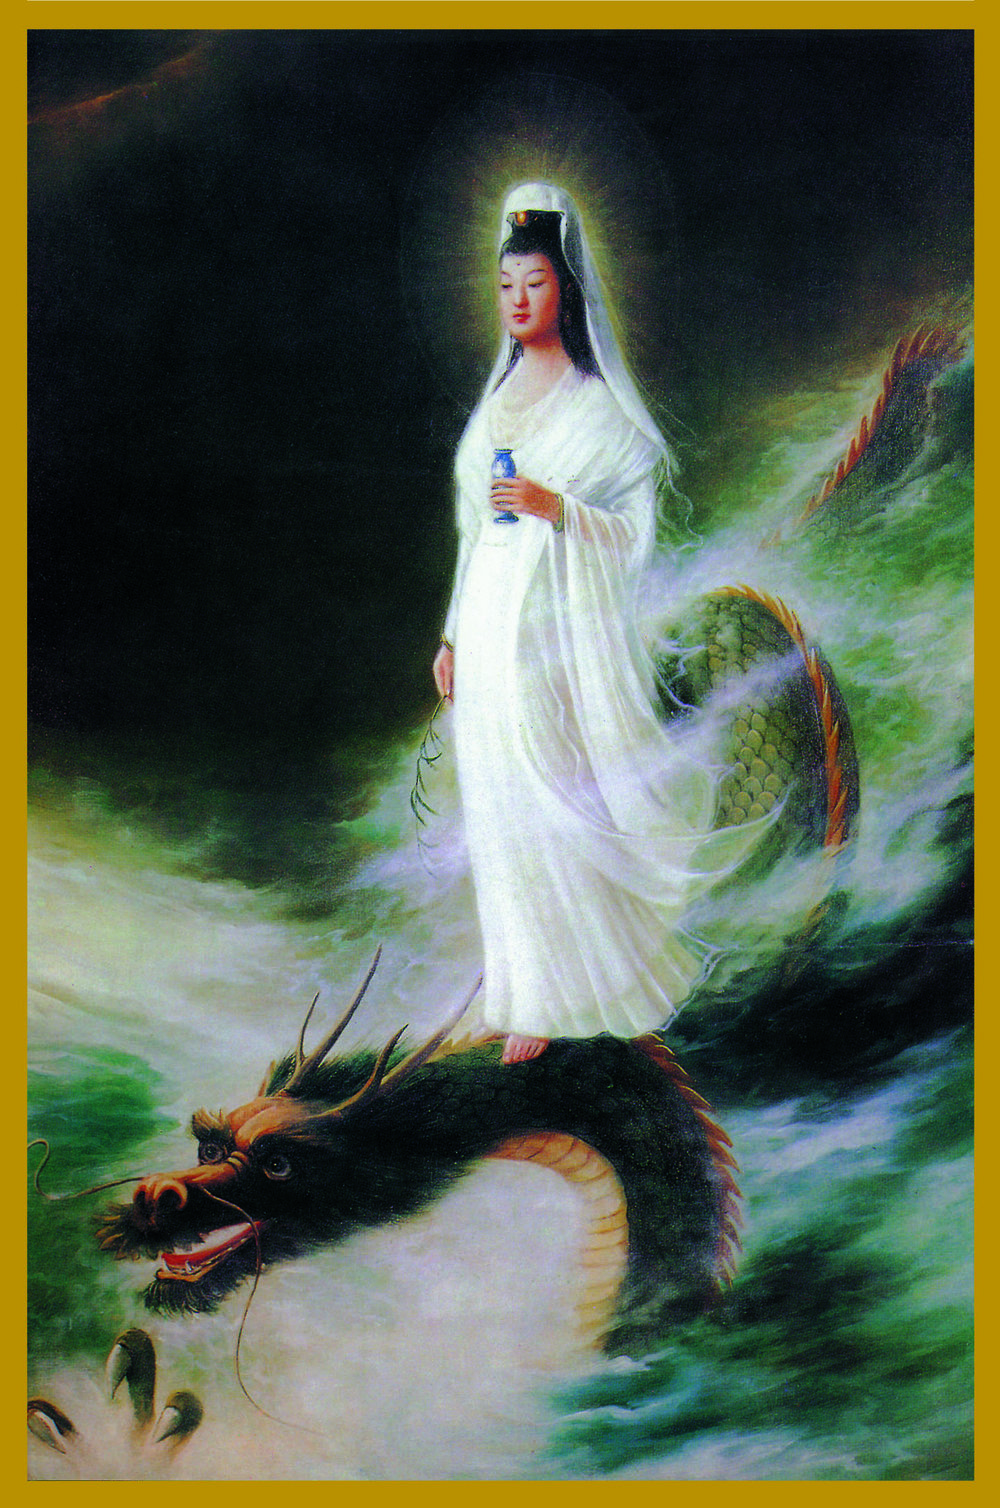 KY-DG - Kuan Yin on DragonBodhisattva of CompassionKuan Shih Yin is the Bodhisattva of Compassion. Her Name means